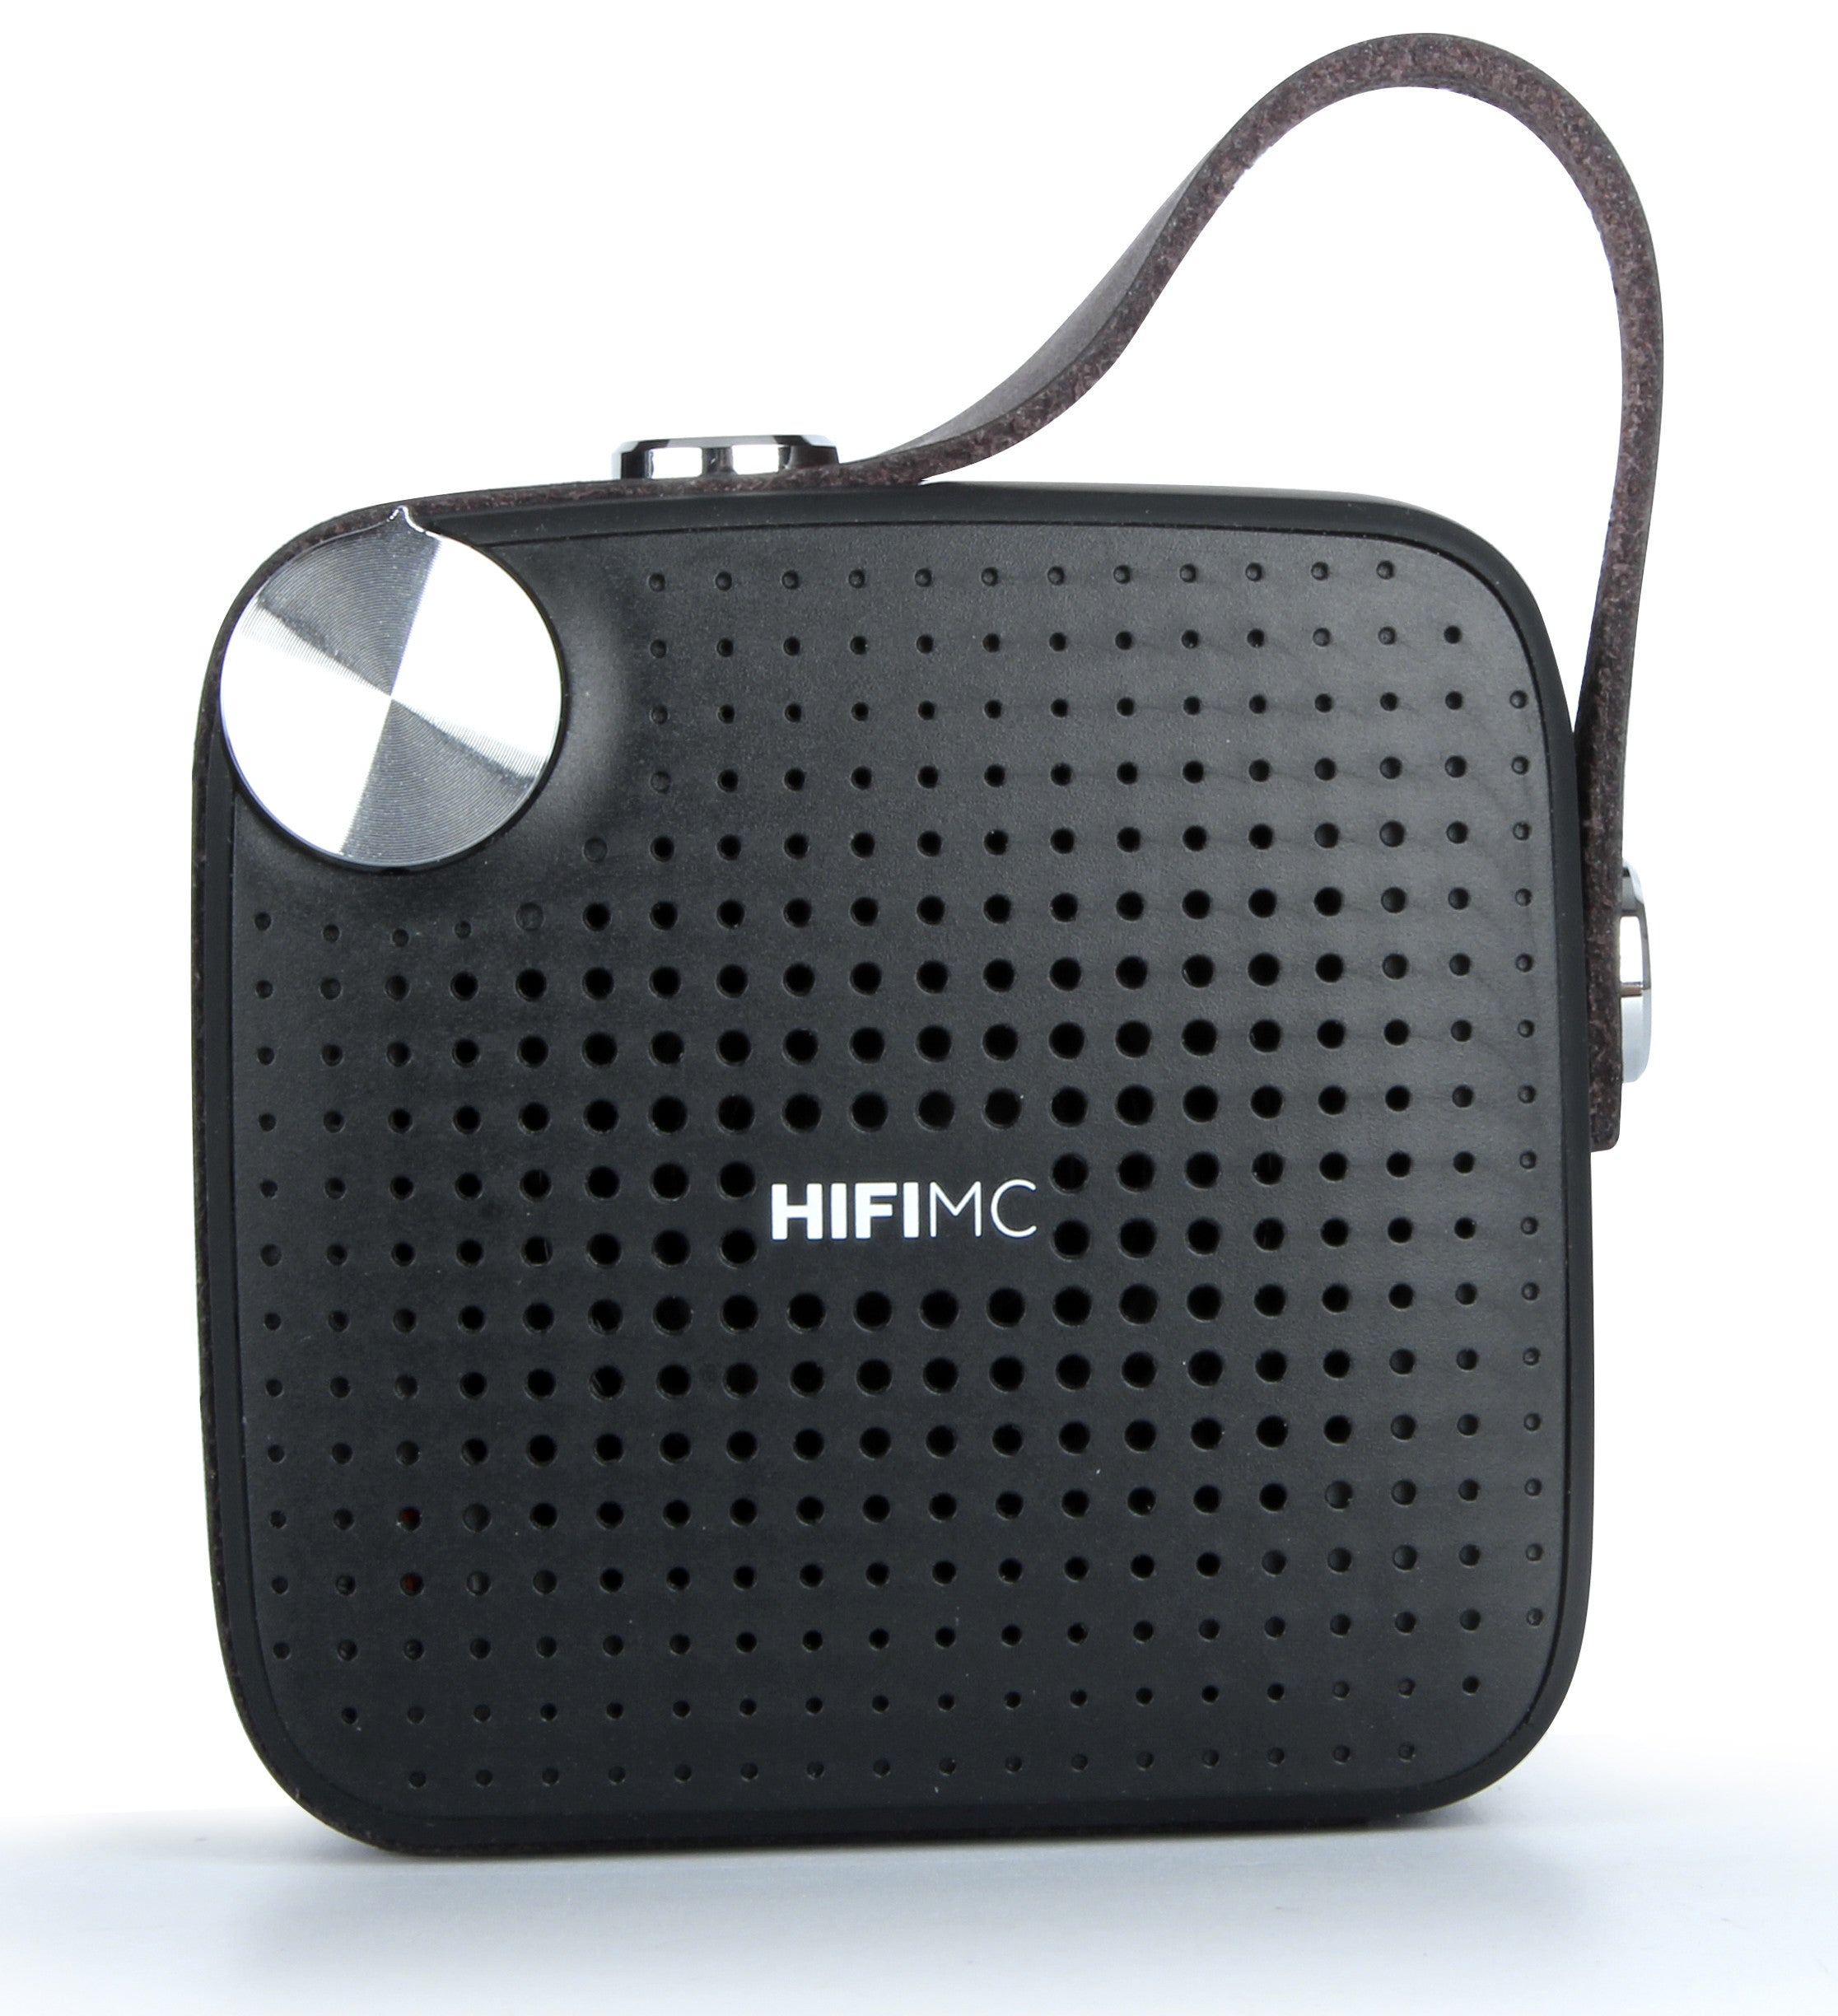 [Hurry] Save 50% With Code[ FLASH50 ] - Only $19 99 For A Limited Time  HIFI MC Micro Music System Ultra-Portable, Premium Sound, Bluetooth  Speaker,